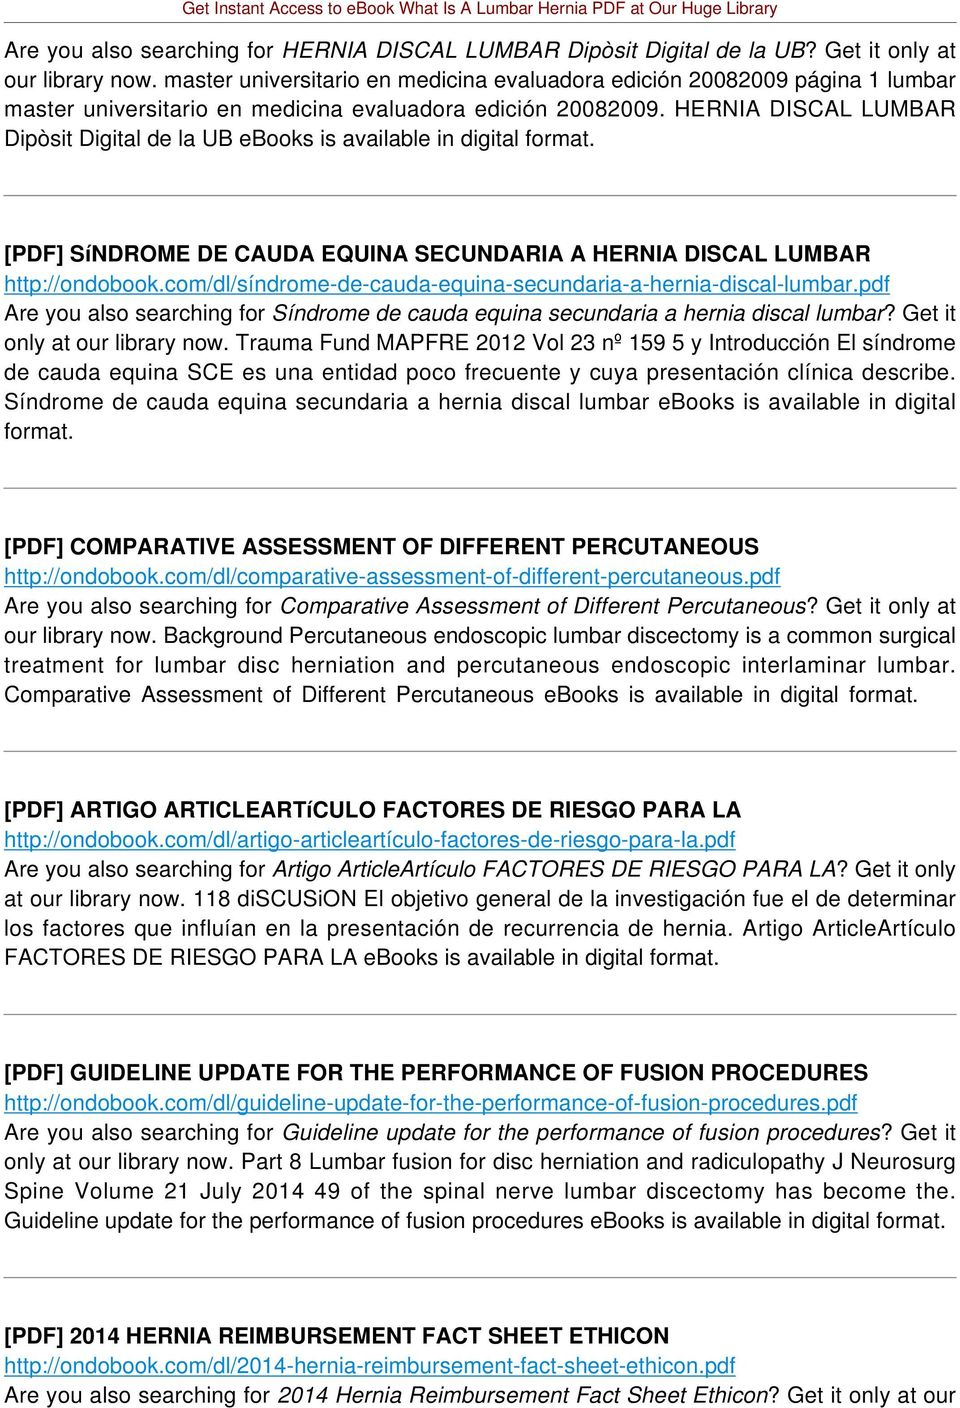 HERNIA DISCAL LUMBAR Dipòsit Digital de la UB ebooks is available in digital format. [PDF] SíNDROME DE CAUDA EQUINA SECUNDARIA A HERNIA DISCAL LUMBAR http://ondobook.